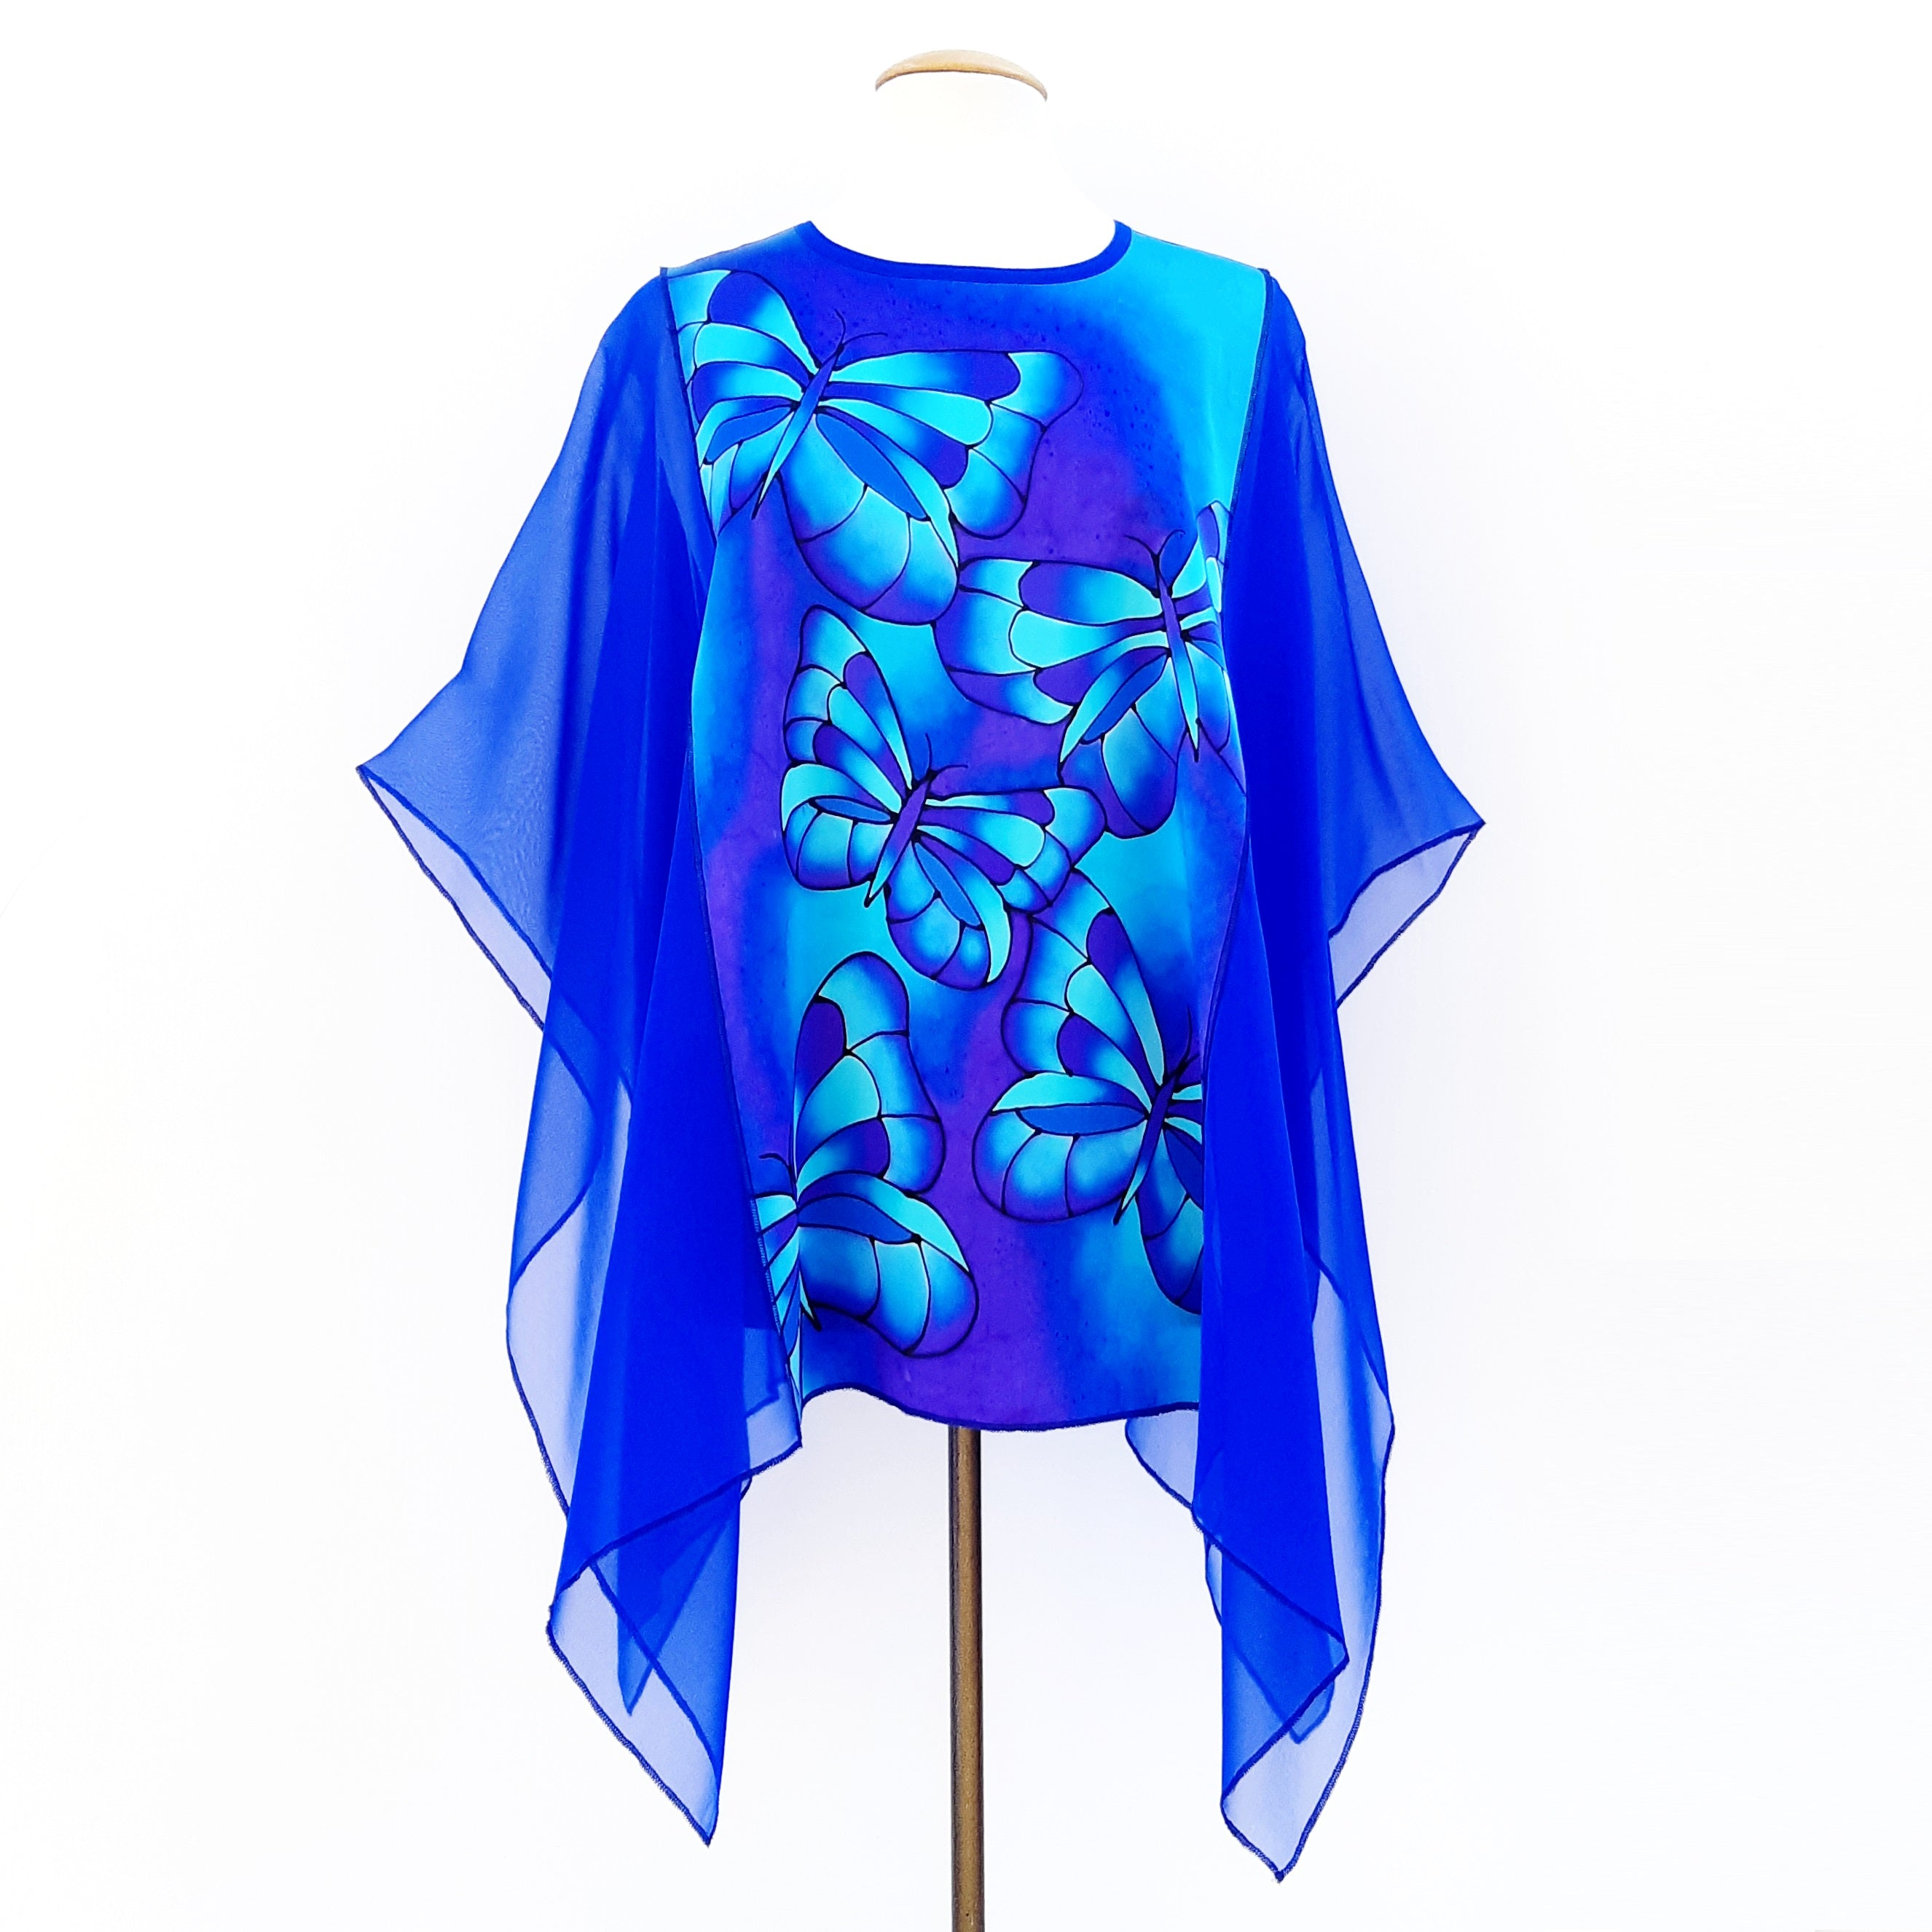 Poncho blouse royal blue butterflies